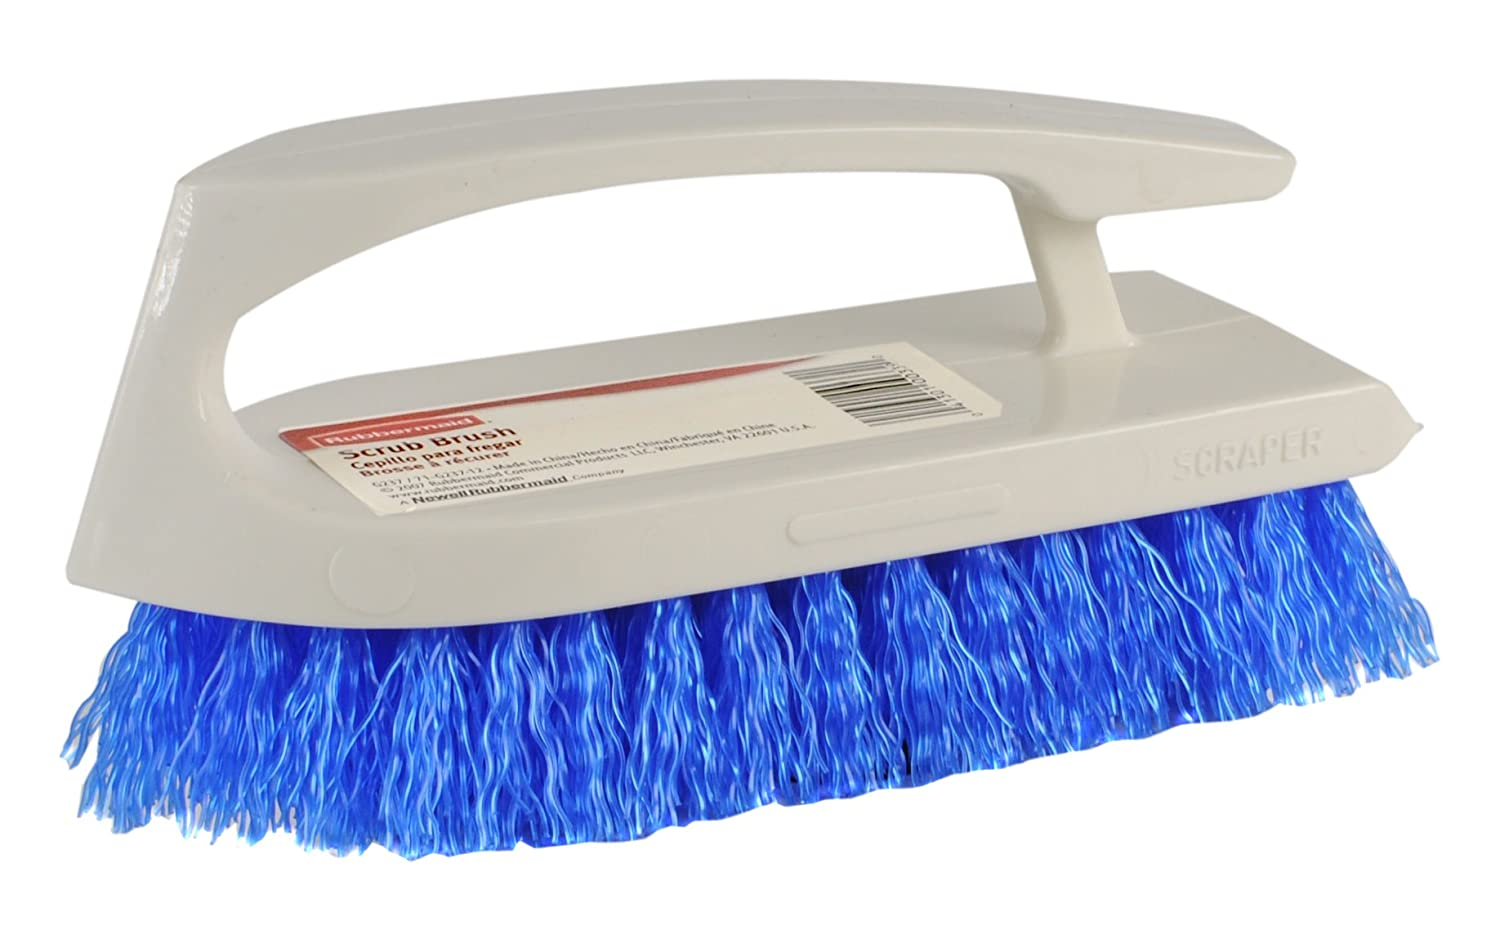 Rubbermaid Professional Plus Scrub Brush Scrubbing Brush FGG23712